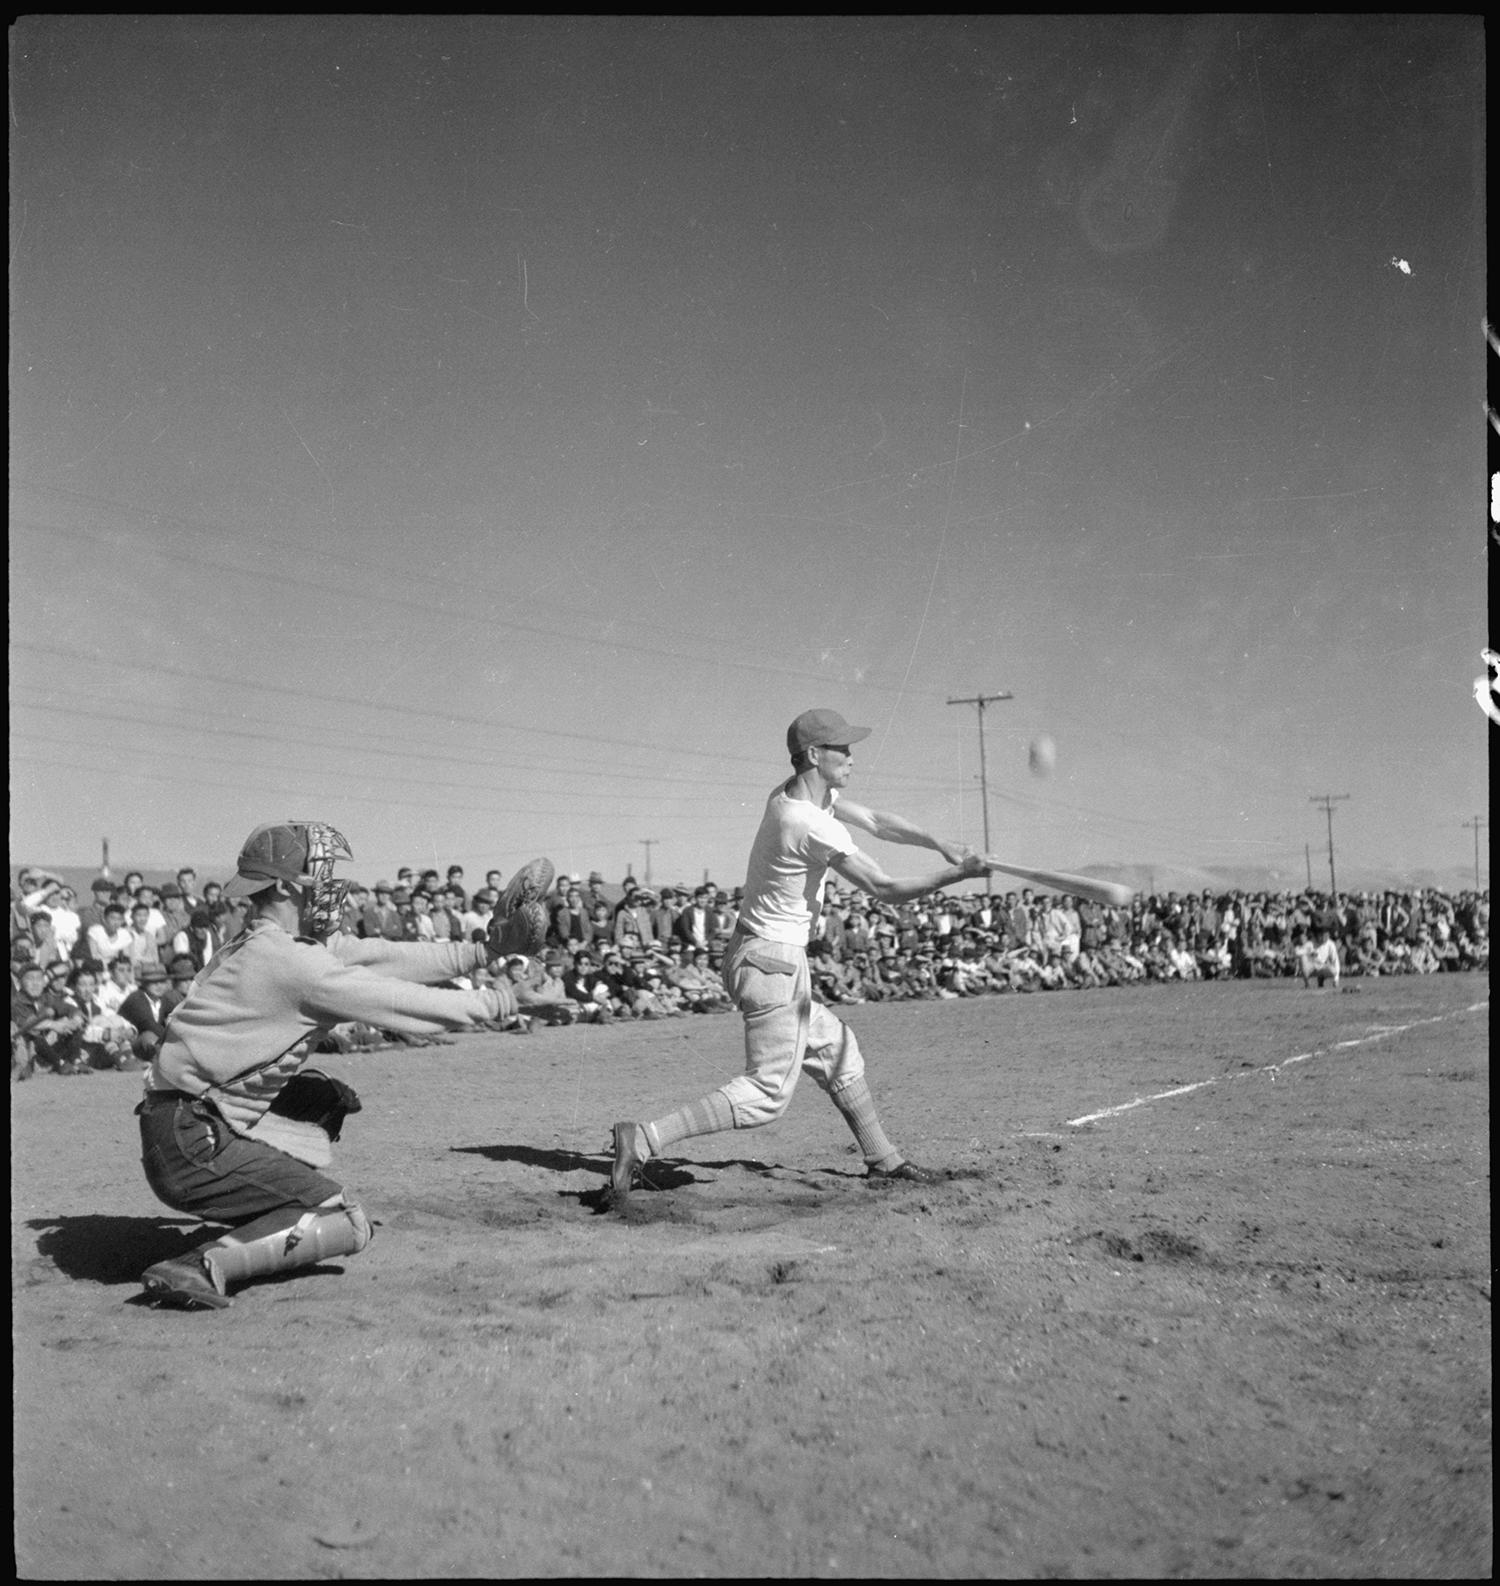 17,000 residents of the Tule Lake Relocation Center watch a baseball game in 1944. (Courtesy of the National Archives and Records Administration)